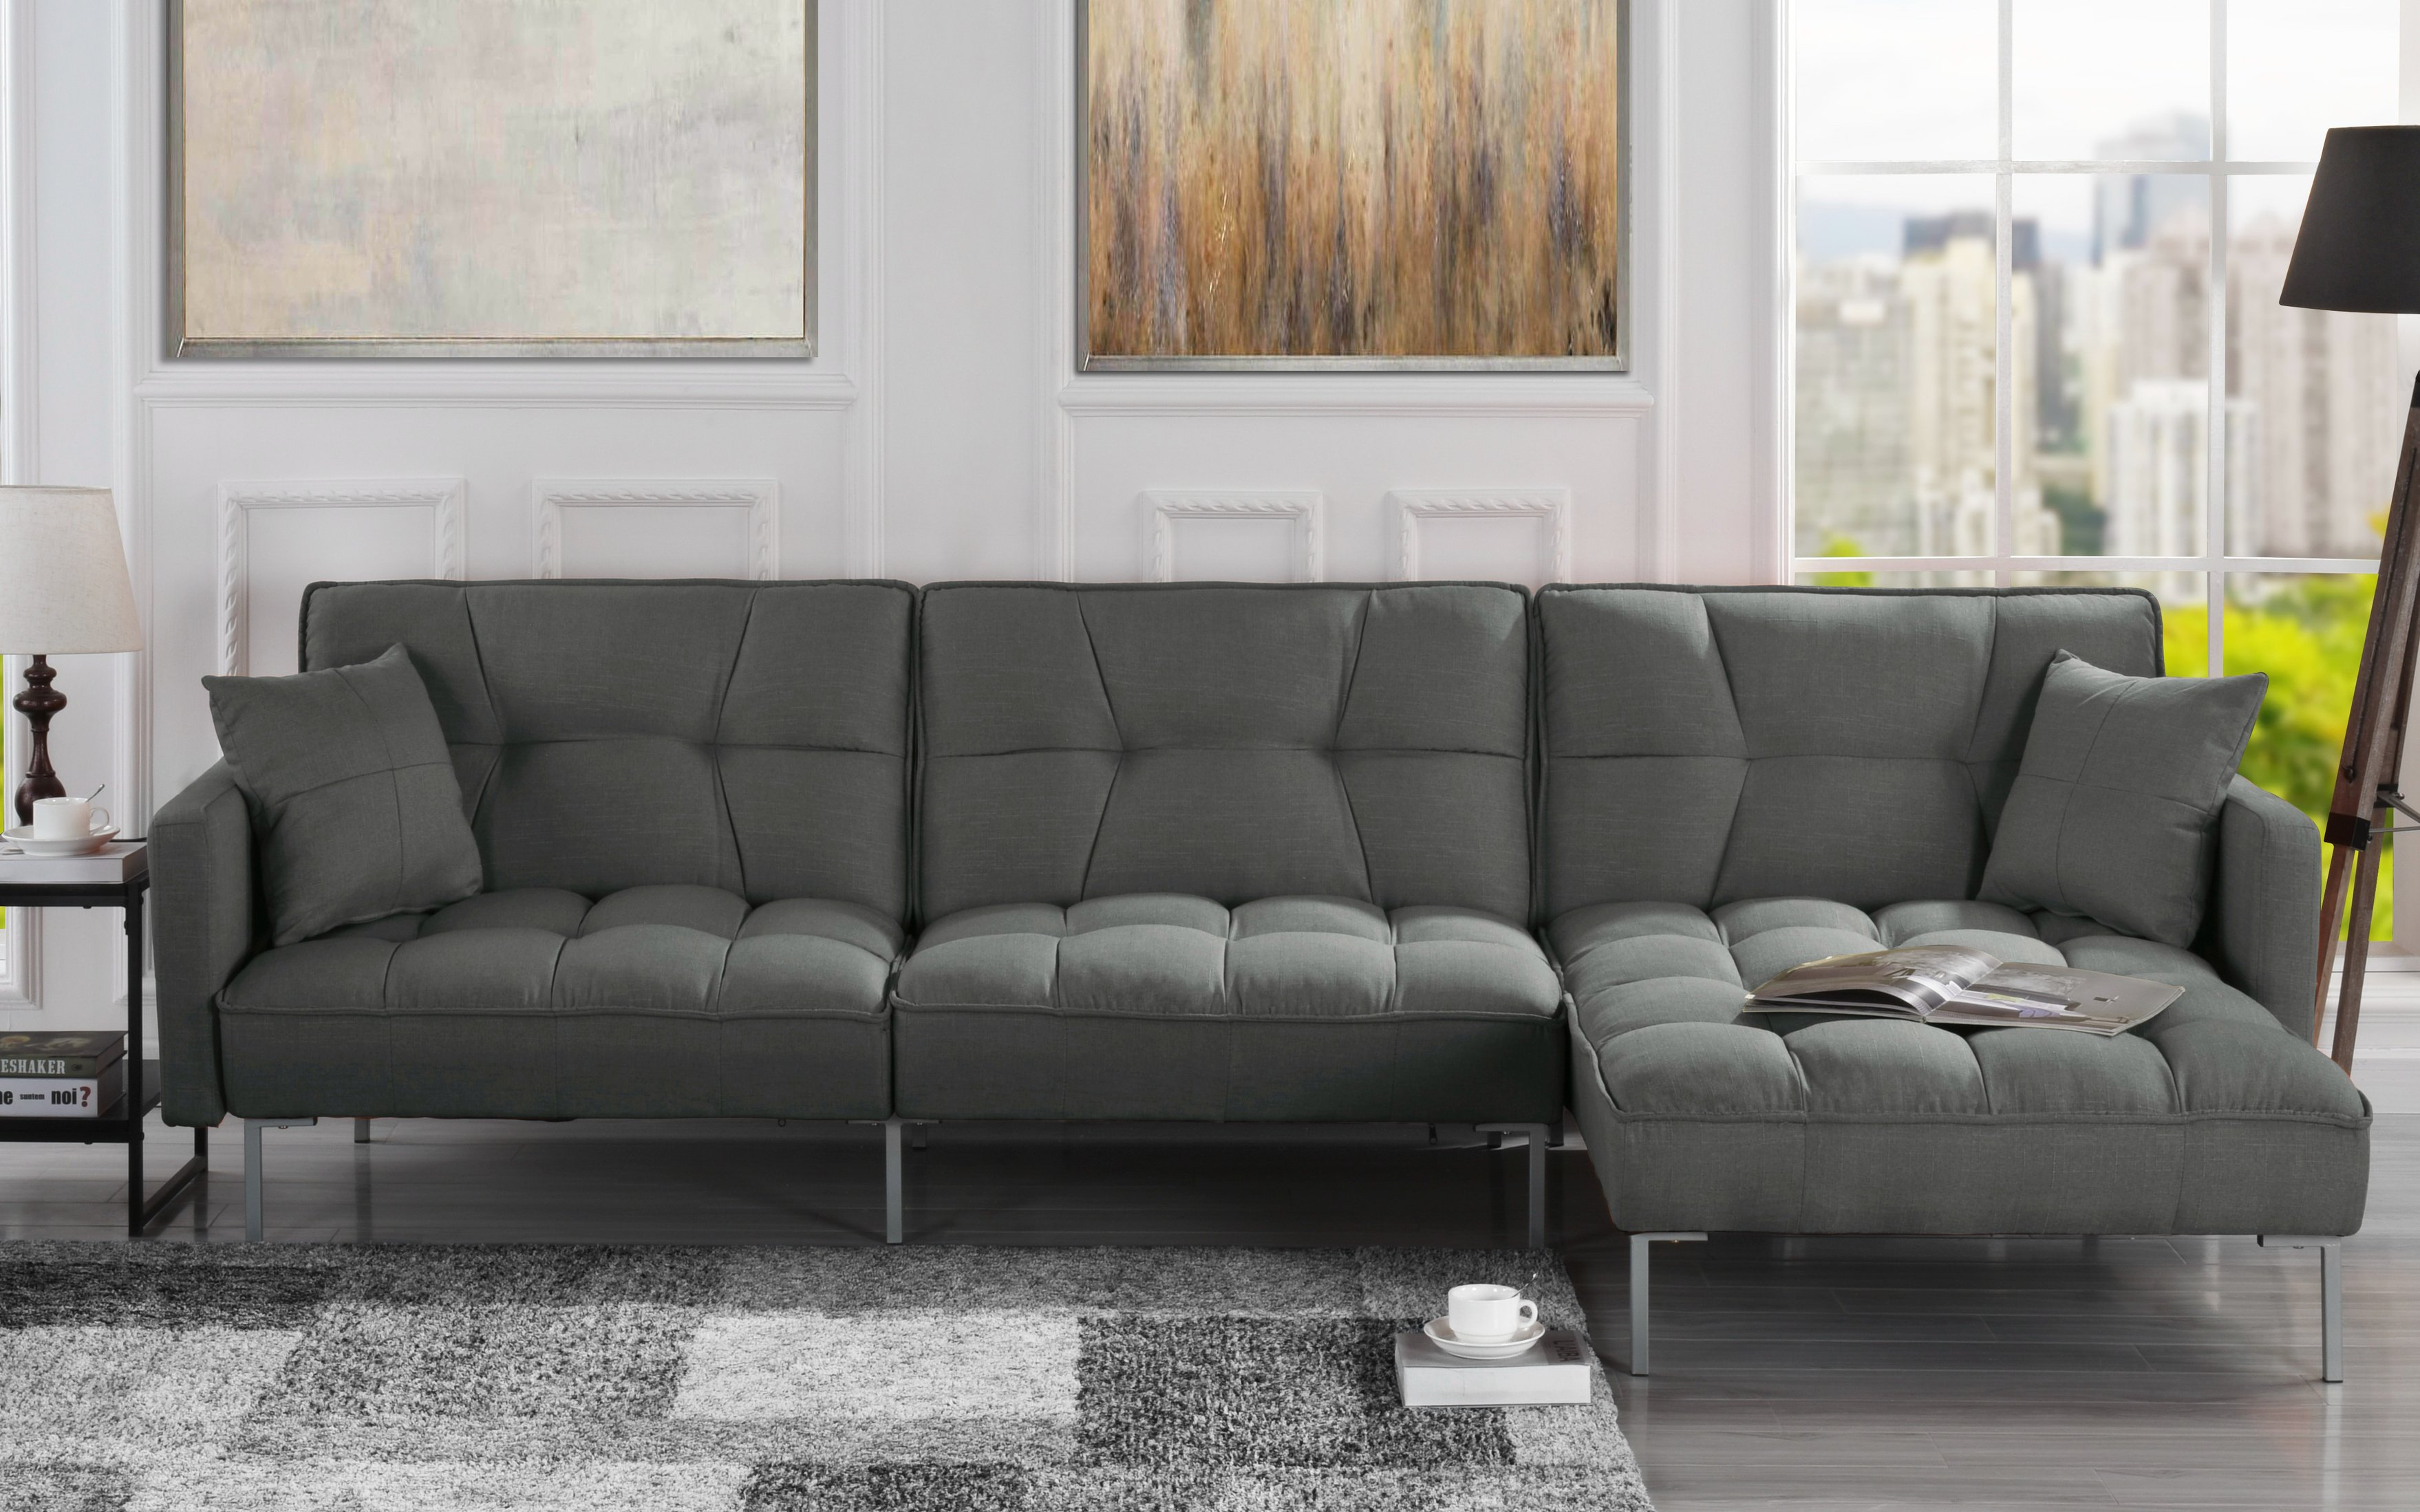 Details About Modern Linen Casual Fabric Futon Sectional Sofa Pillows 110 6 Wide Dark Grey